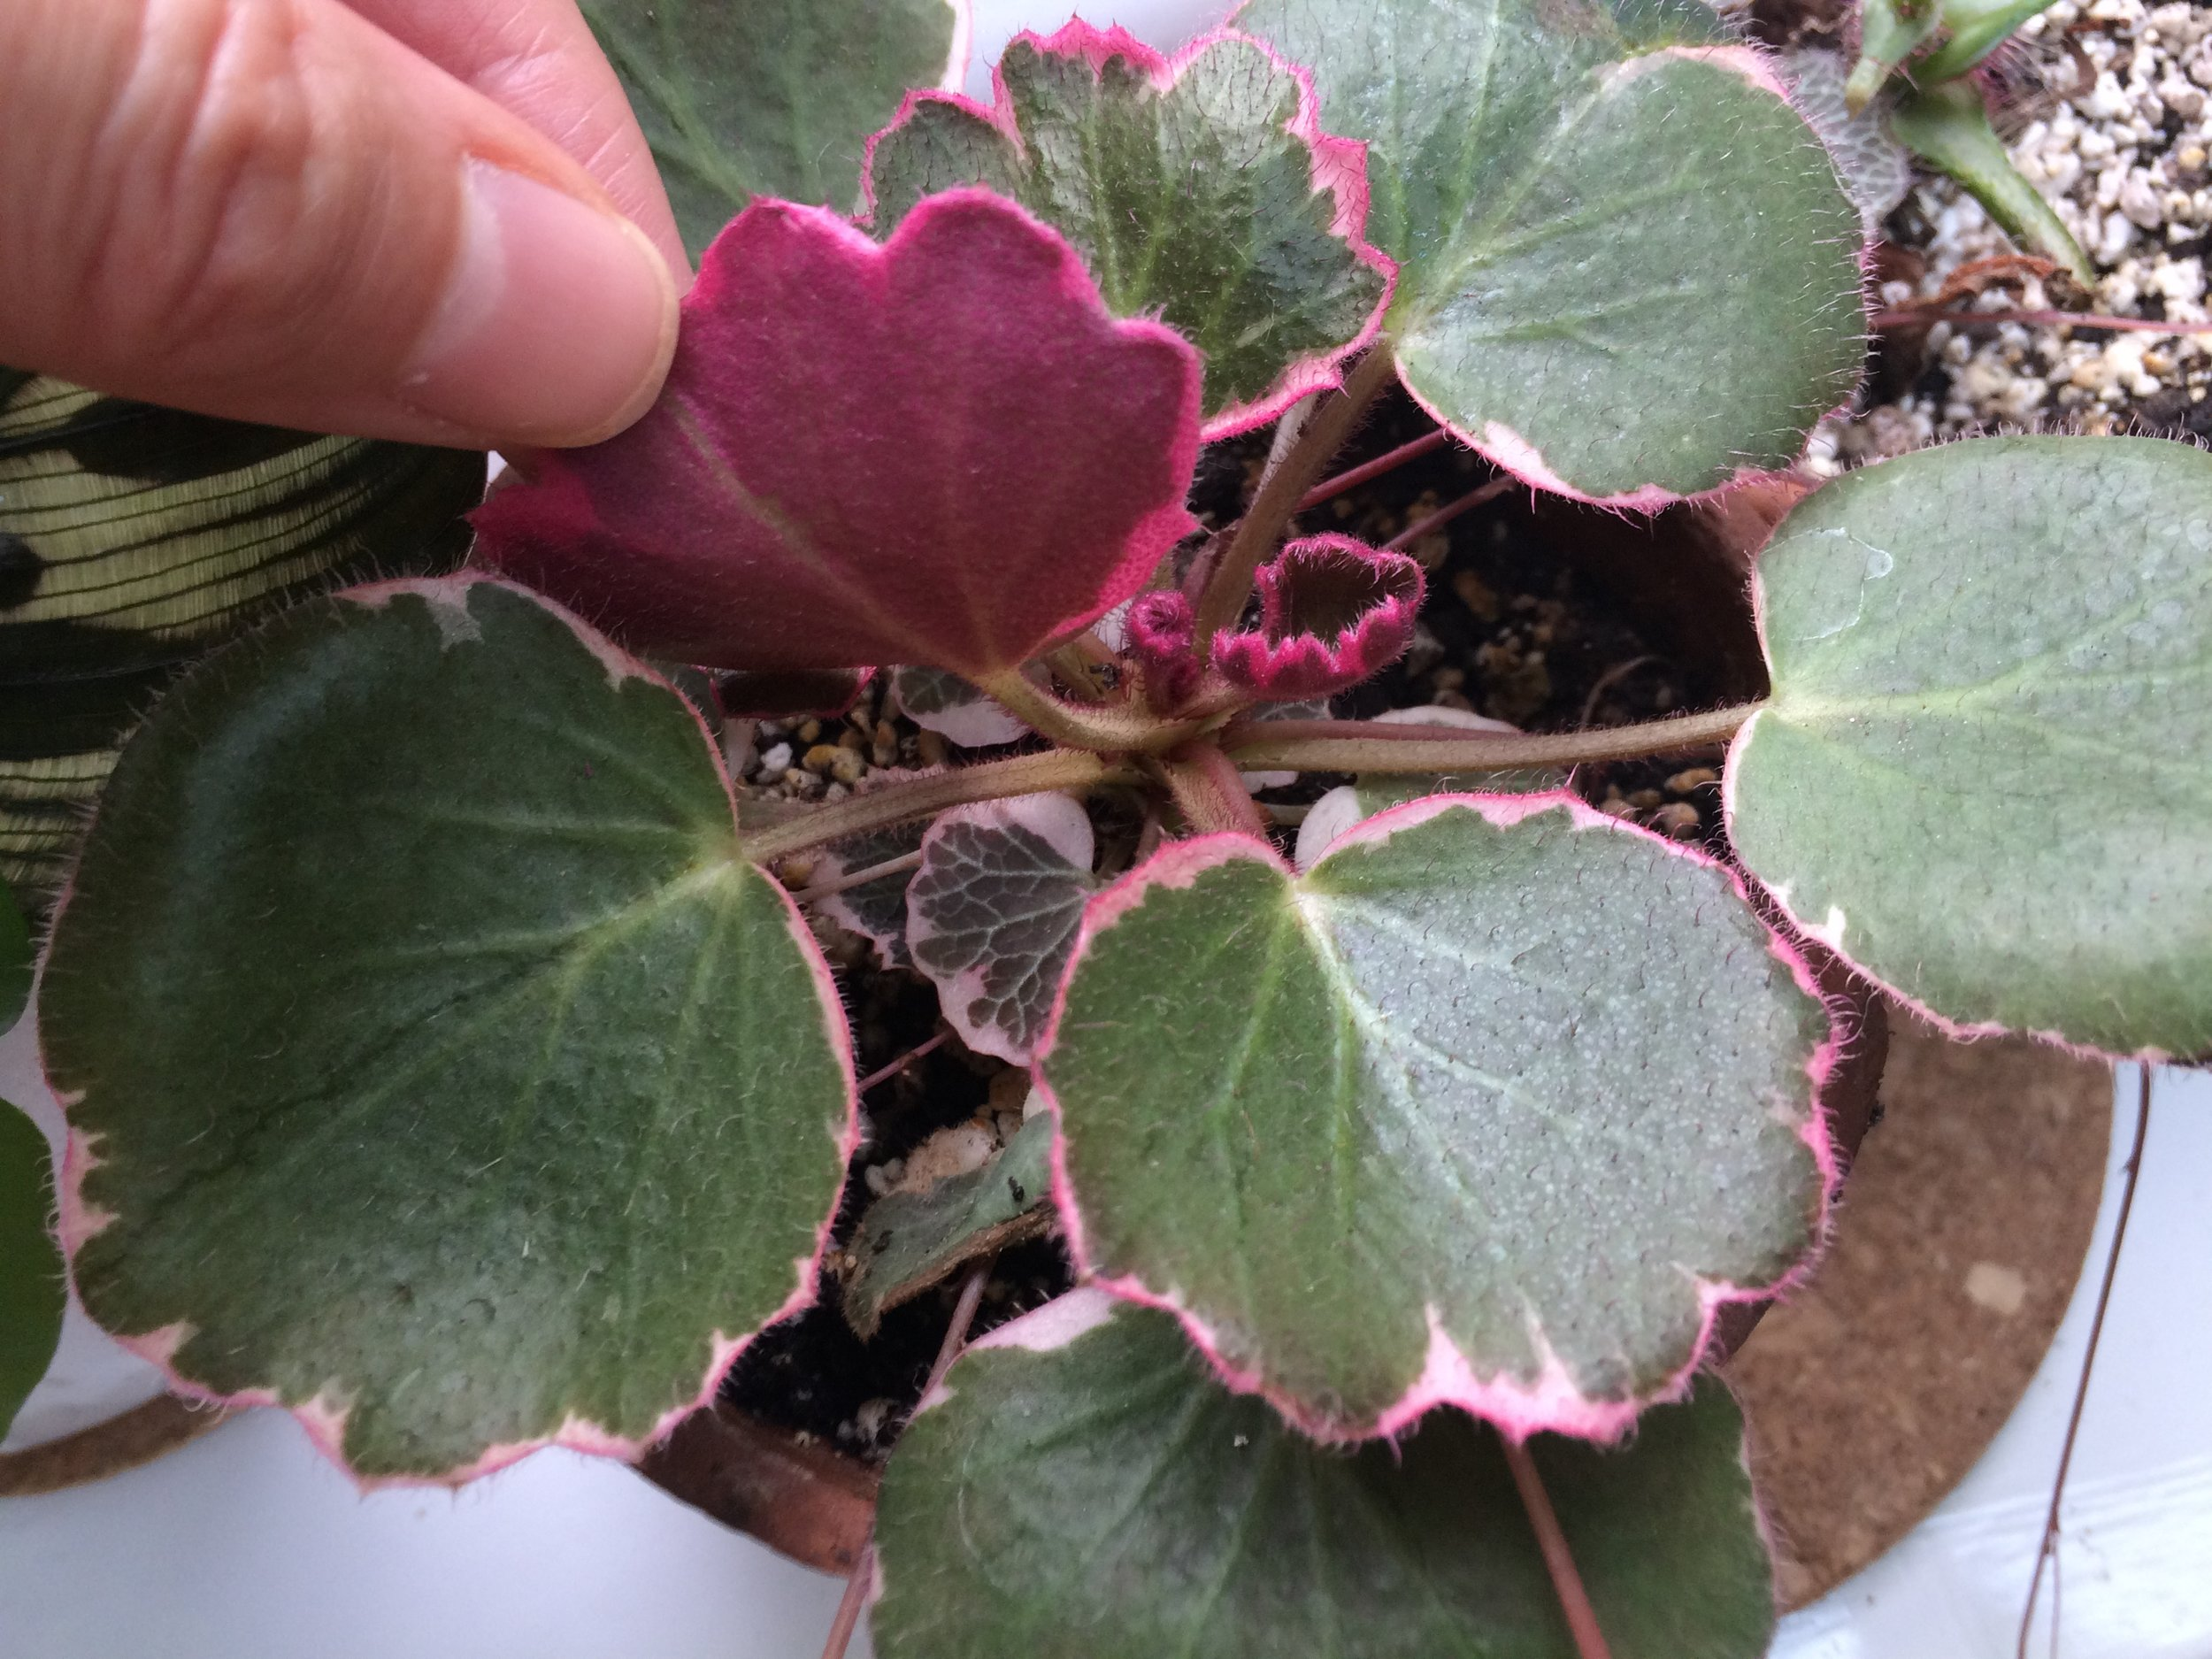 Pink leaf undersides on  Saxifraga stolonifera  'Tricolor'. Photograph: Jane Perrone